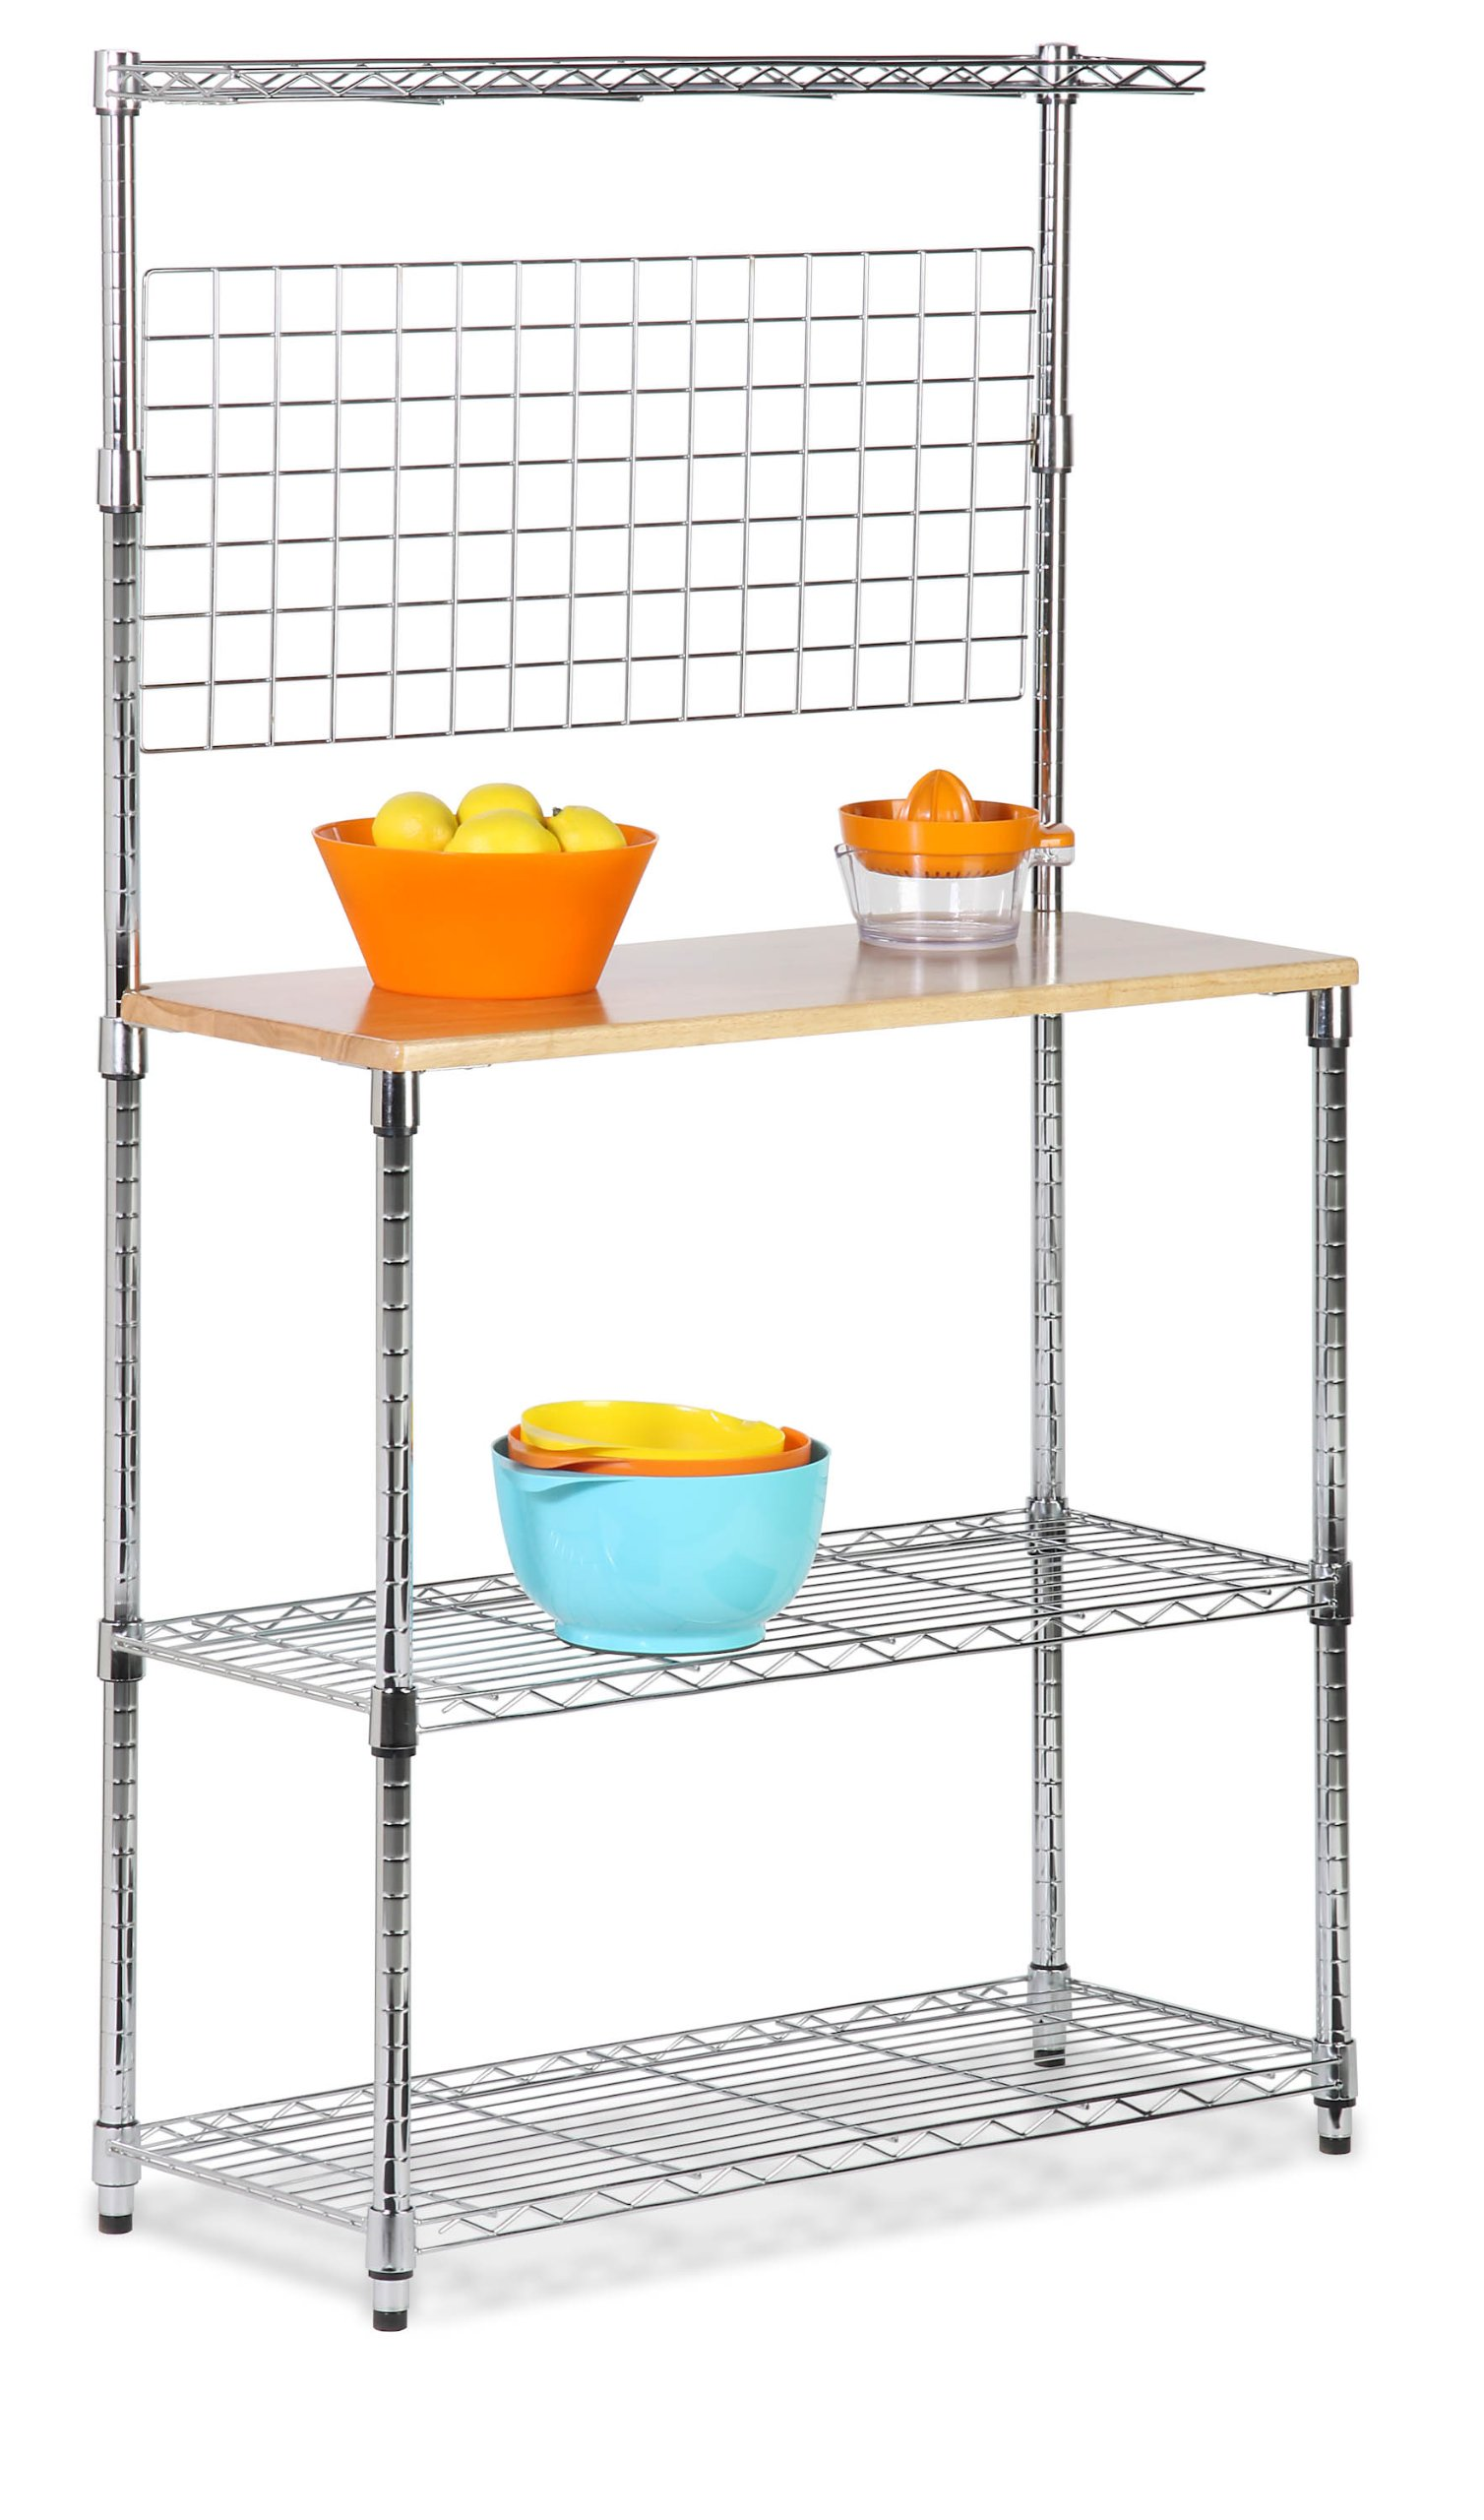 Honey-Can-Do SHF-01608 Bakers Rack with Kitchen Storage, Steel and Wood